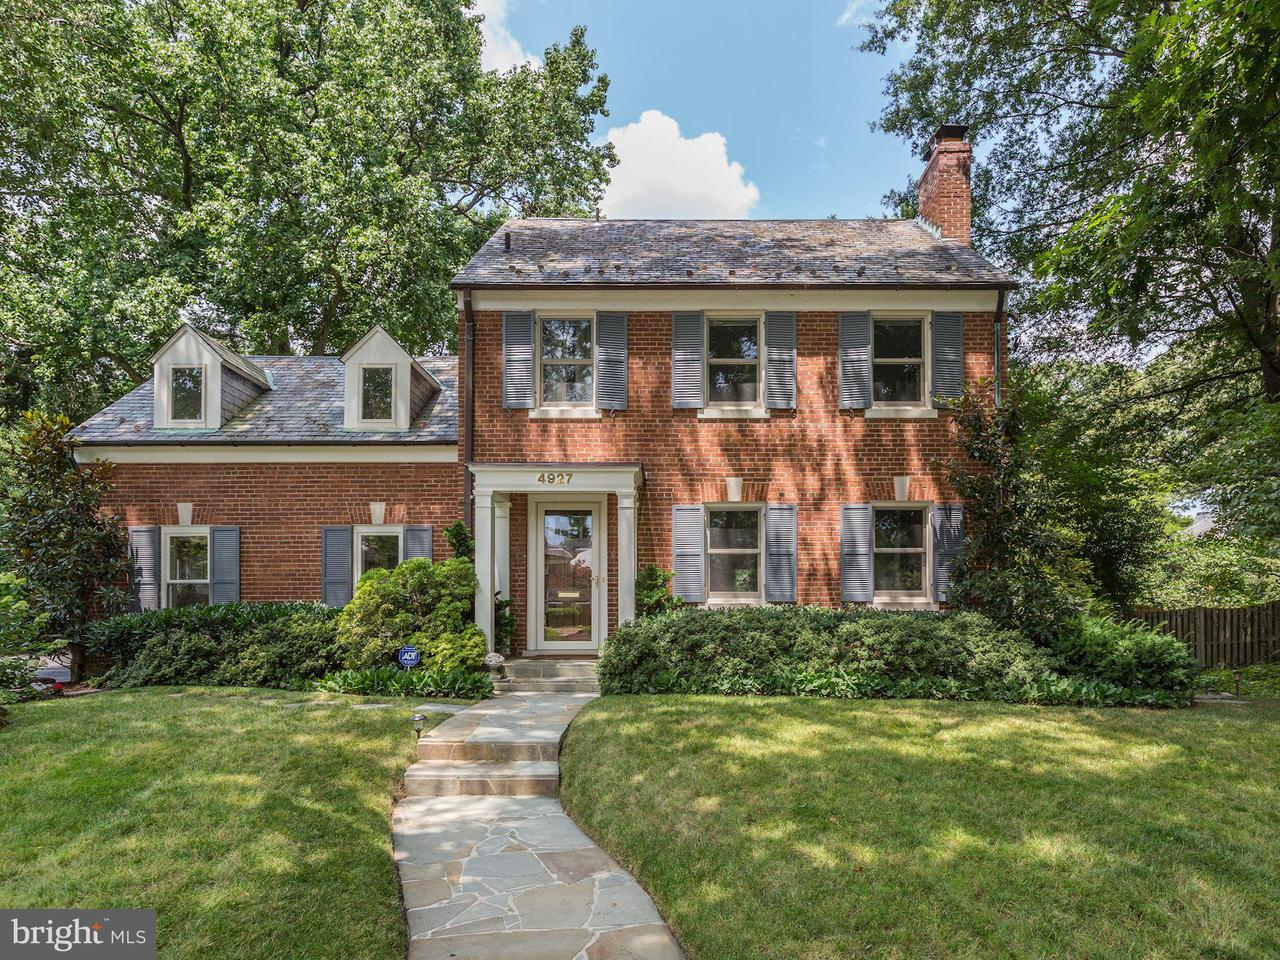 Single Family Home for Sale at 4927 SEDGWICK ST NW 4927 SEDGWICK ST NW Washington, District Of Columbia 20016 United States